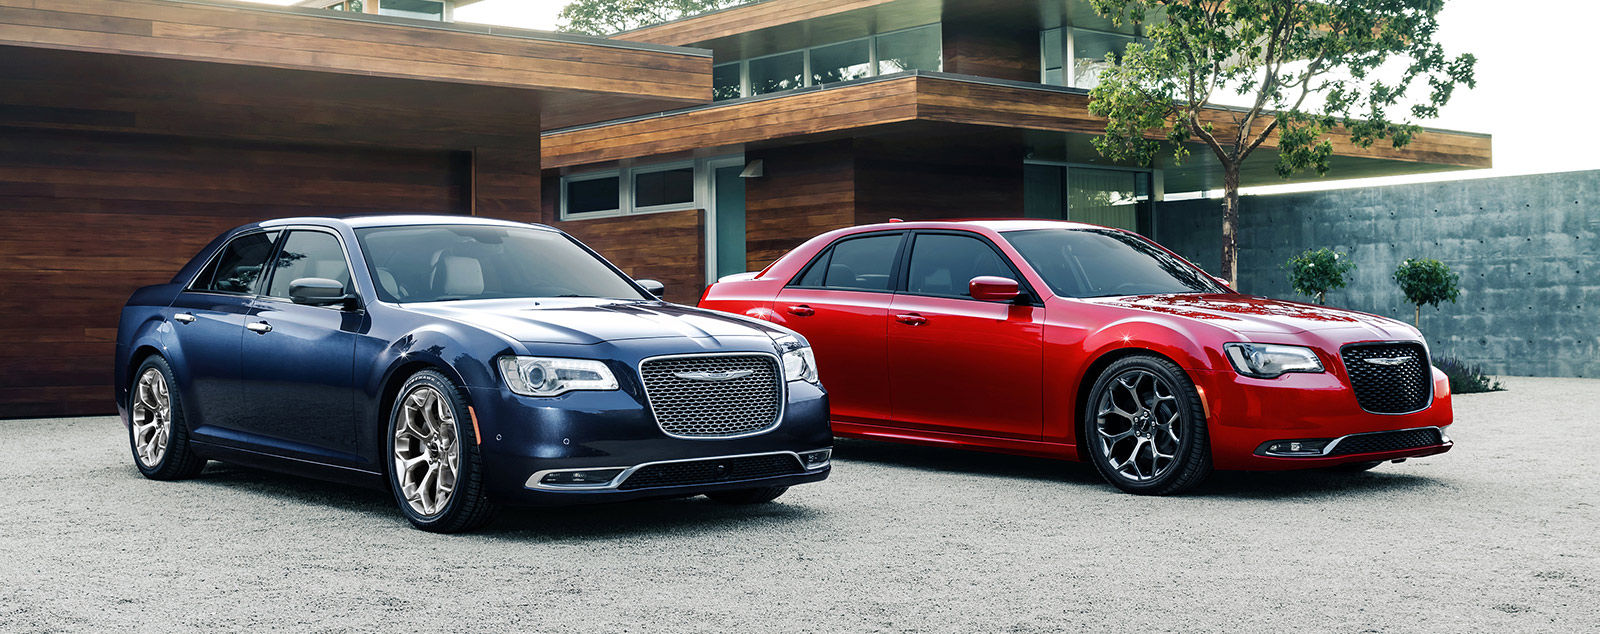 2016 Chrysler 300 #7